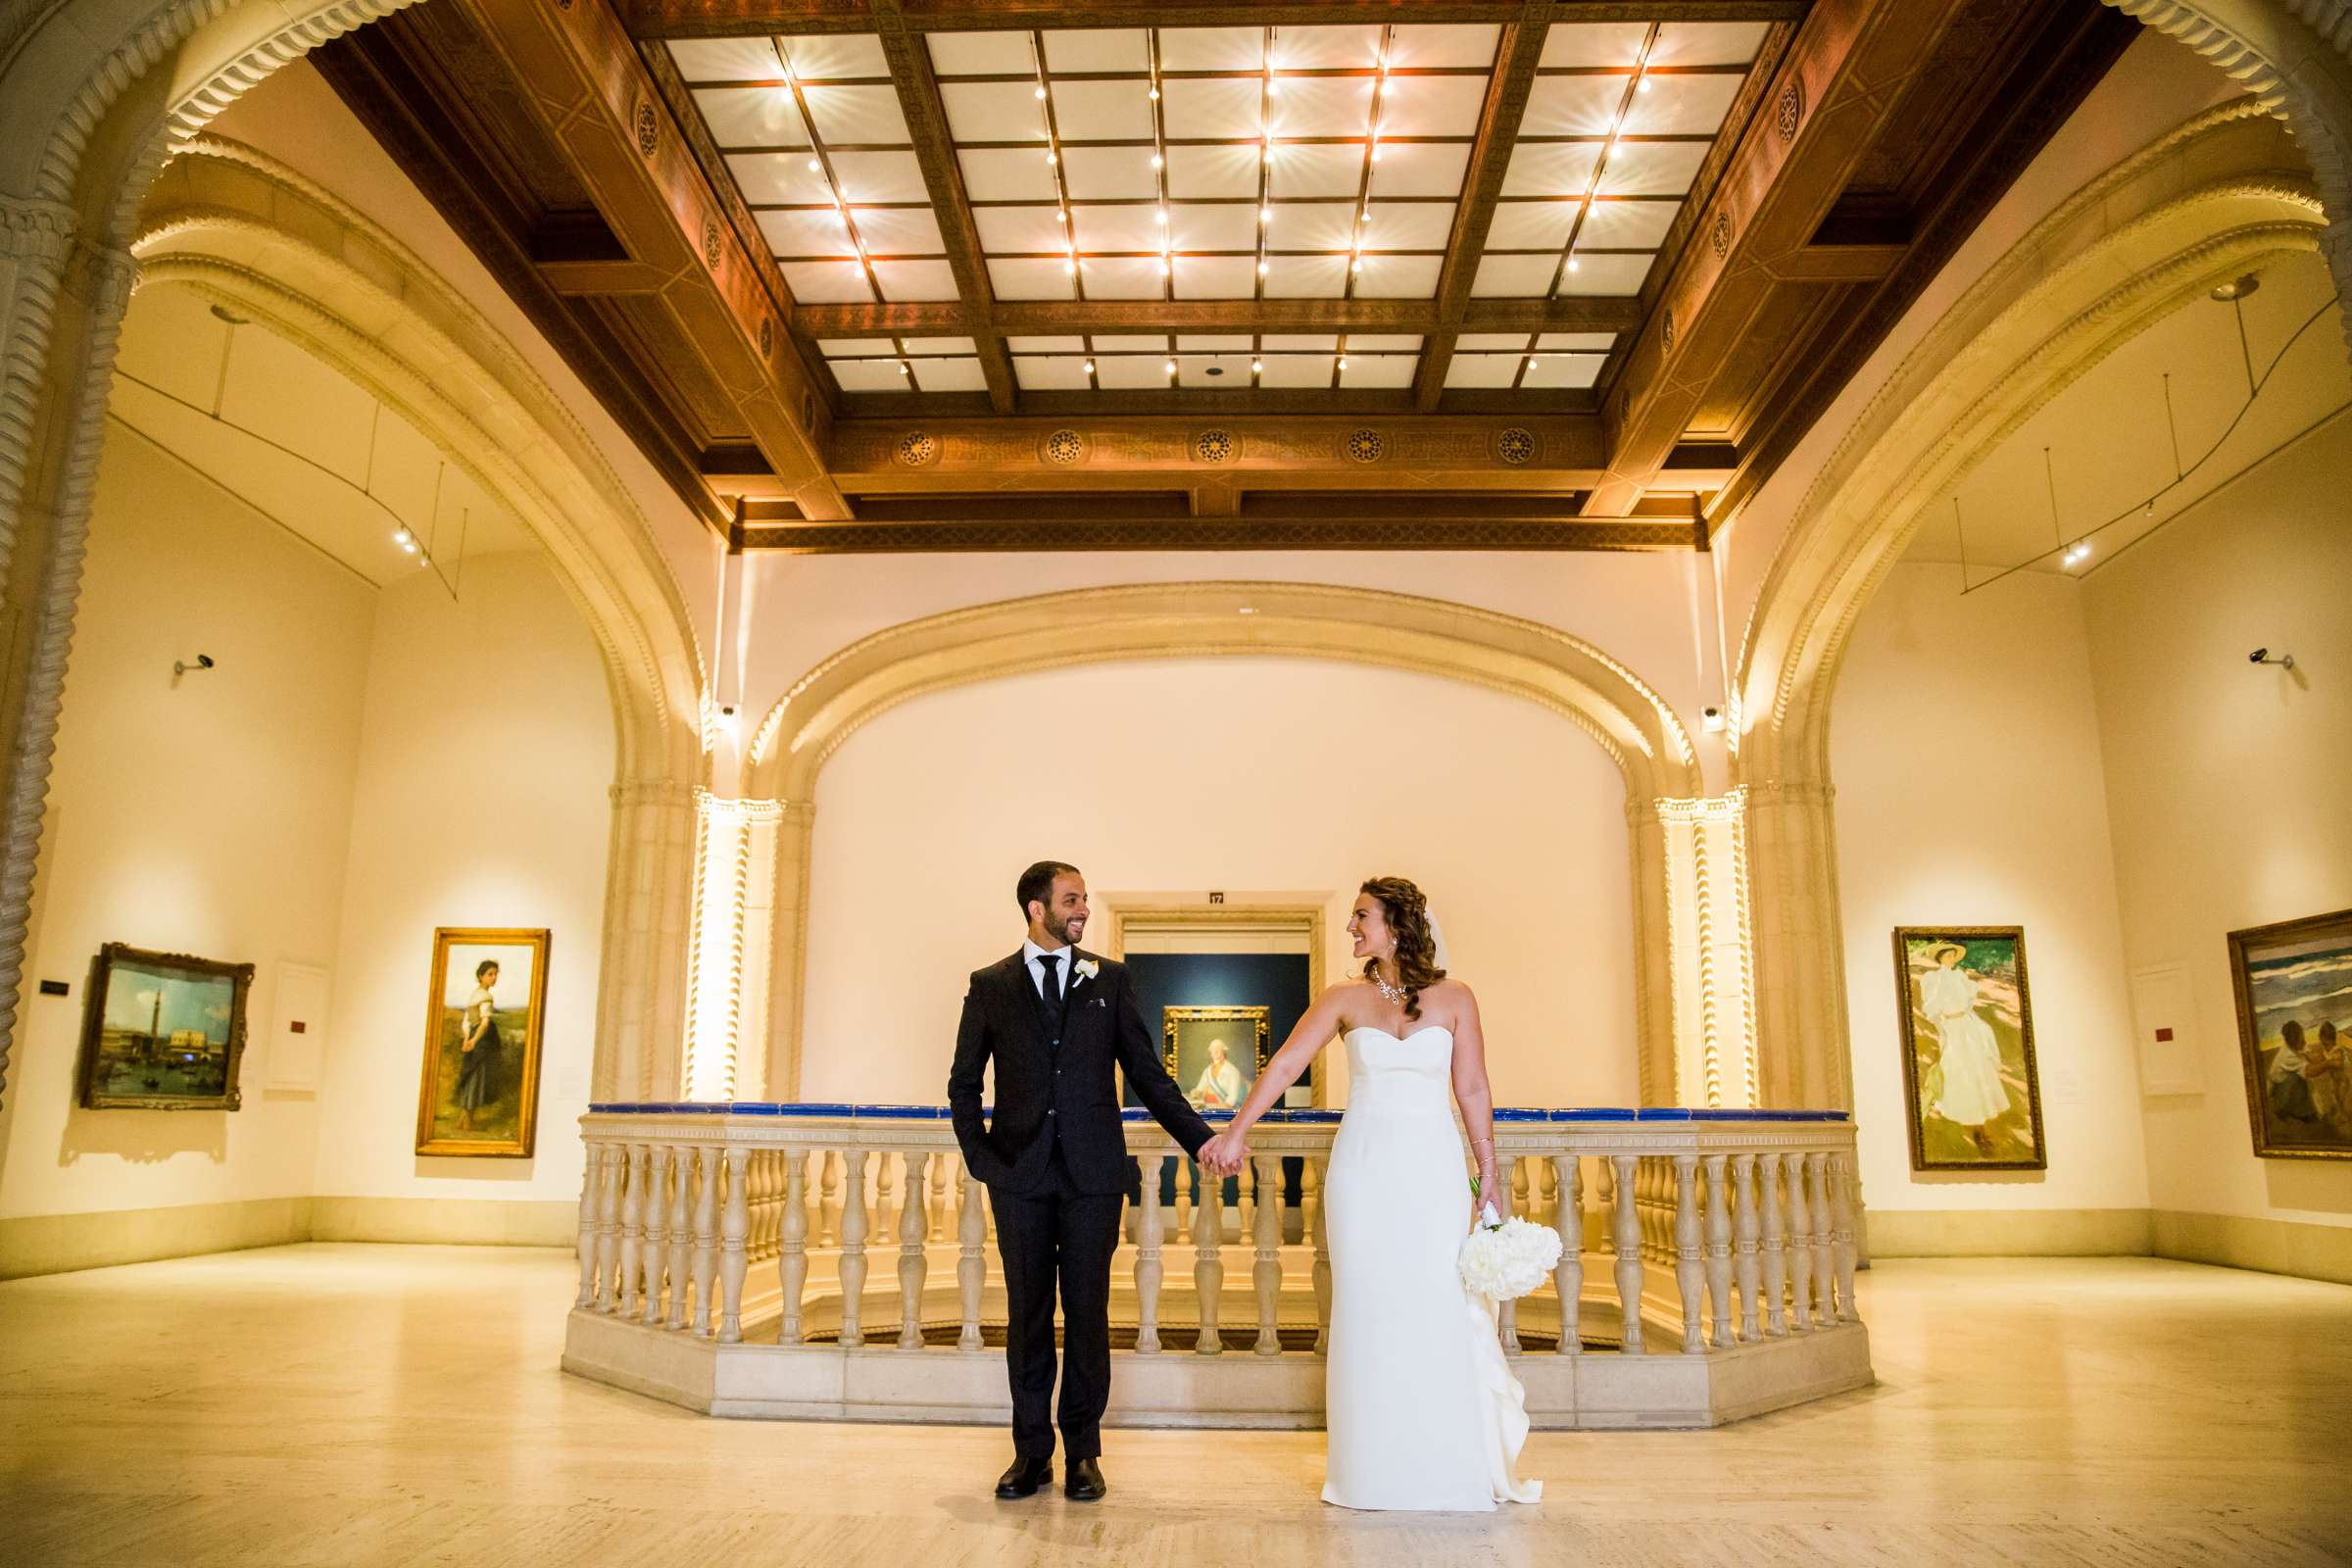 San Diego Museum of Art Wedding coordinated by First Comes Love Weddings & Events, Ruthie and Larry Wedding Photo #236797 by True Photography